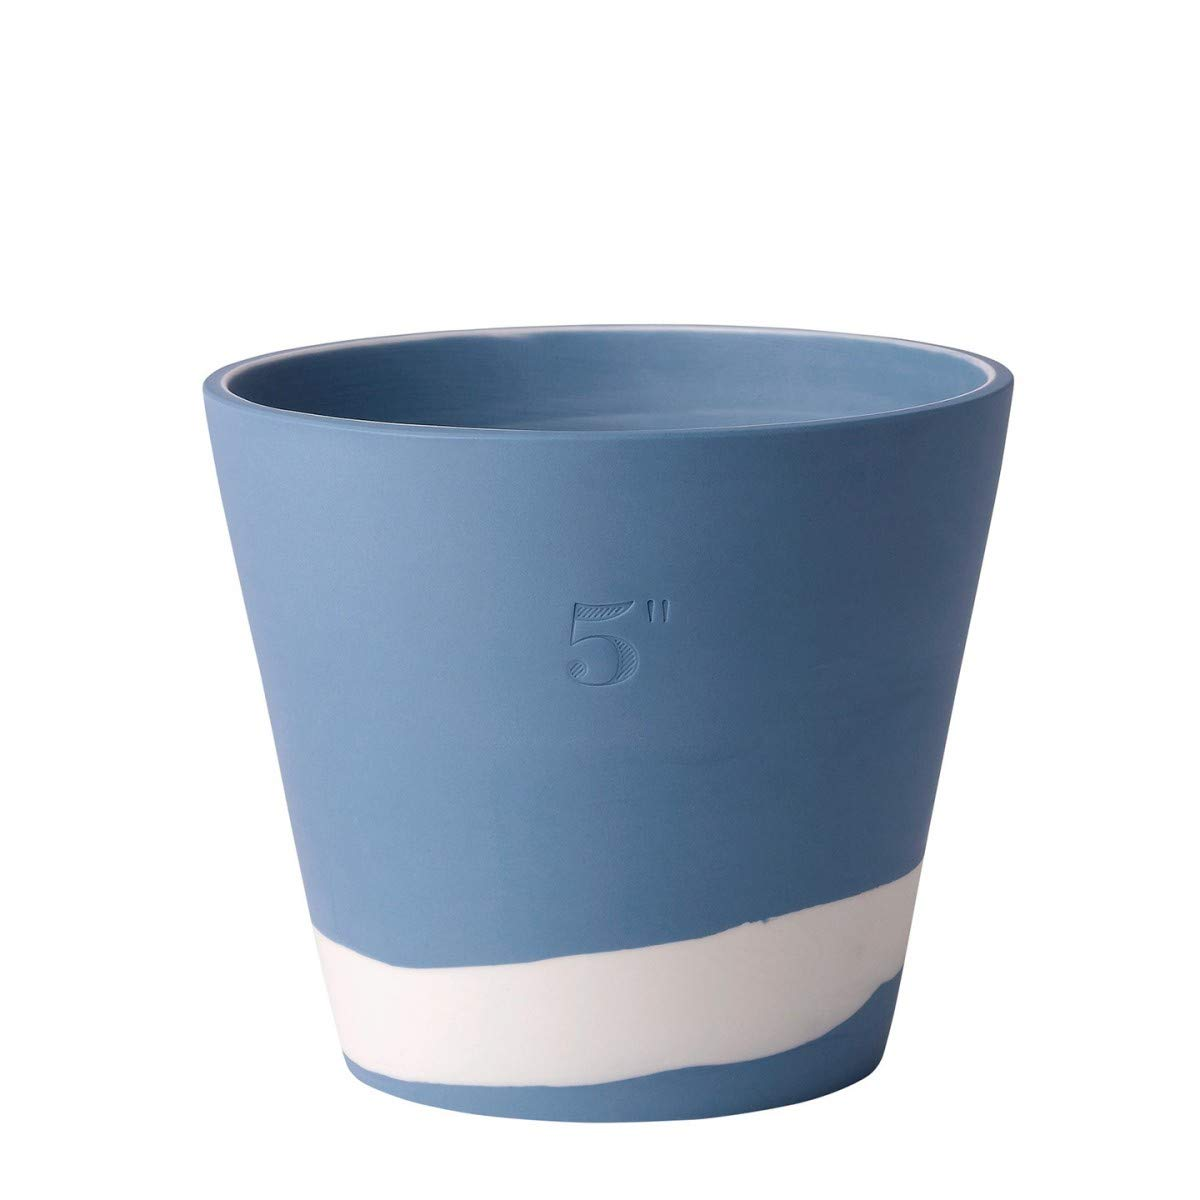 Wedgwood 40031980 Burlington 5'' Planter, 5'', Blue, White